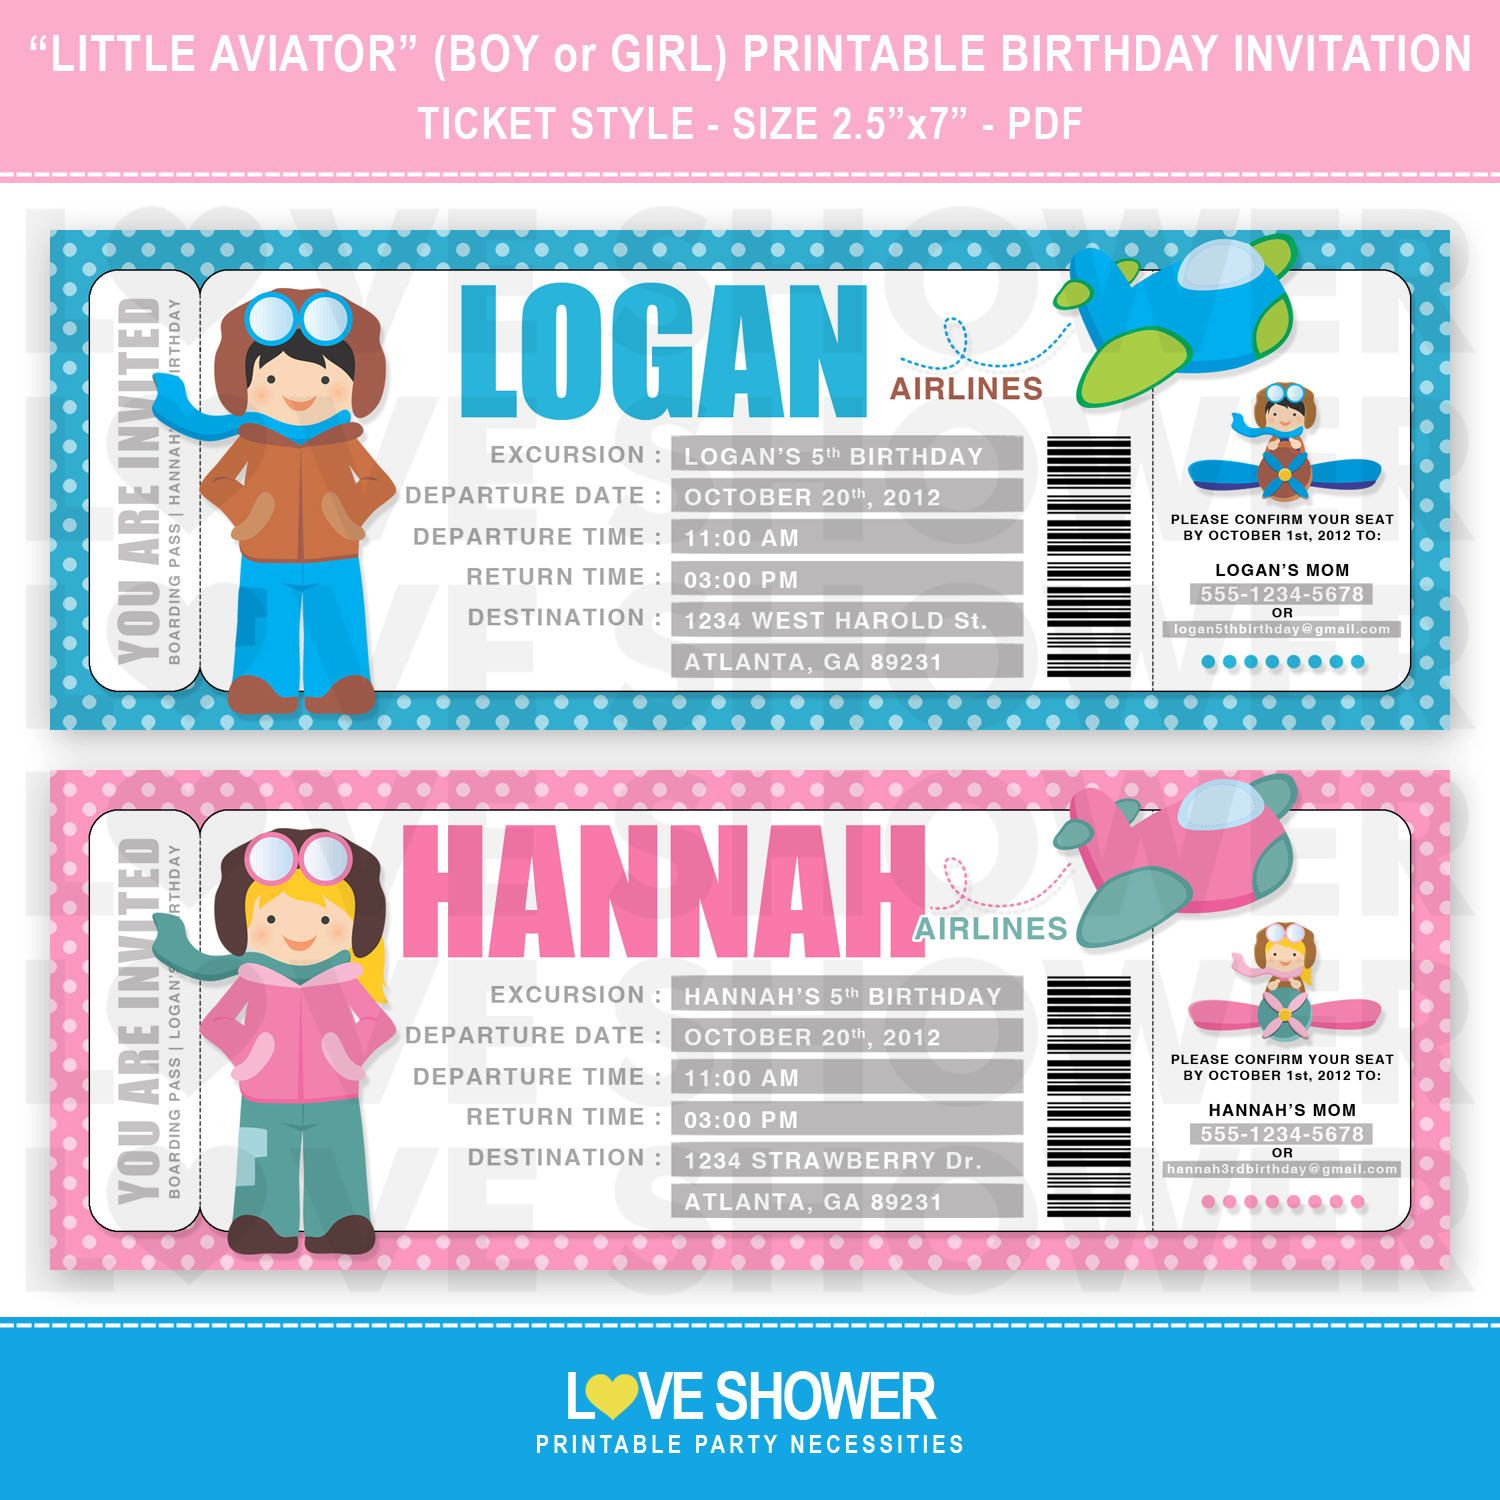 Little Aviator   Pilot Boy   Pilot Girl   Airline Ticket Birthday  Invitation   Boarding Pass   Printable  Airline Ticket Template Word